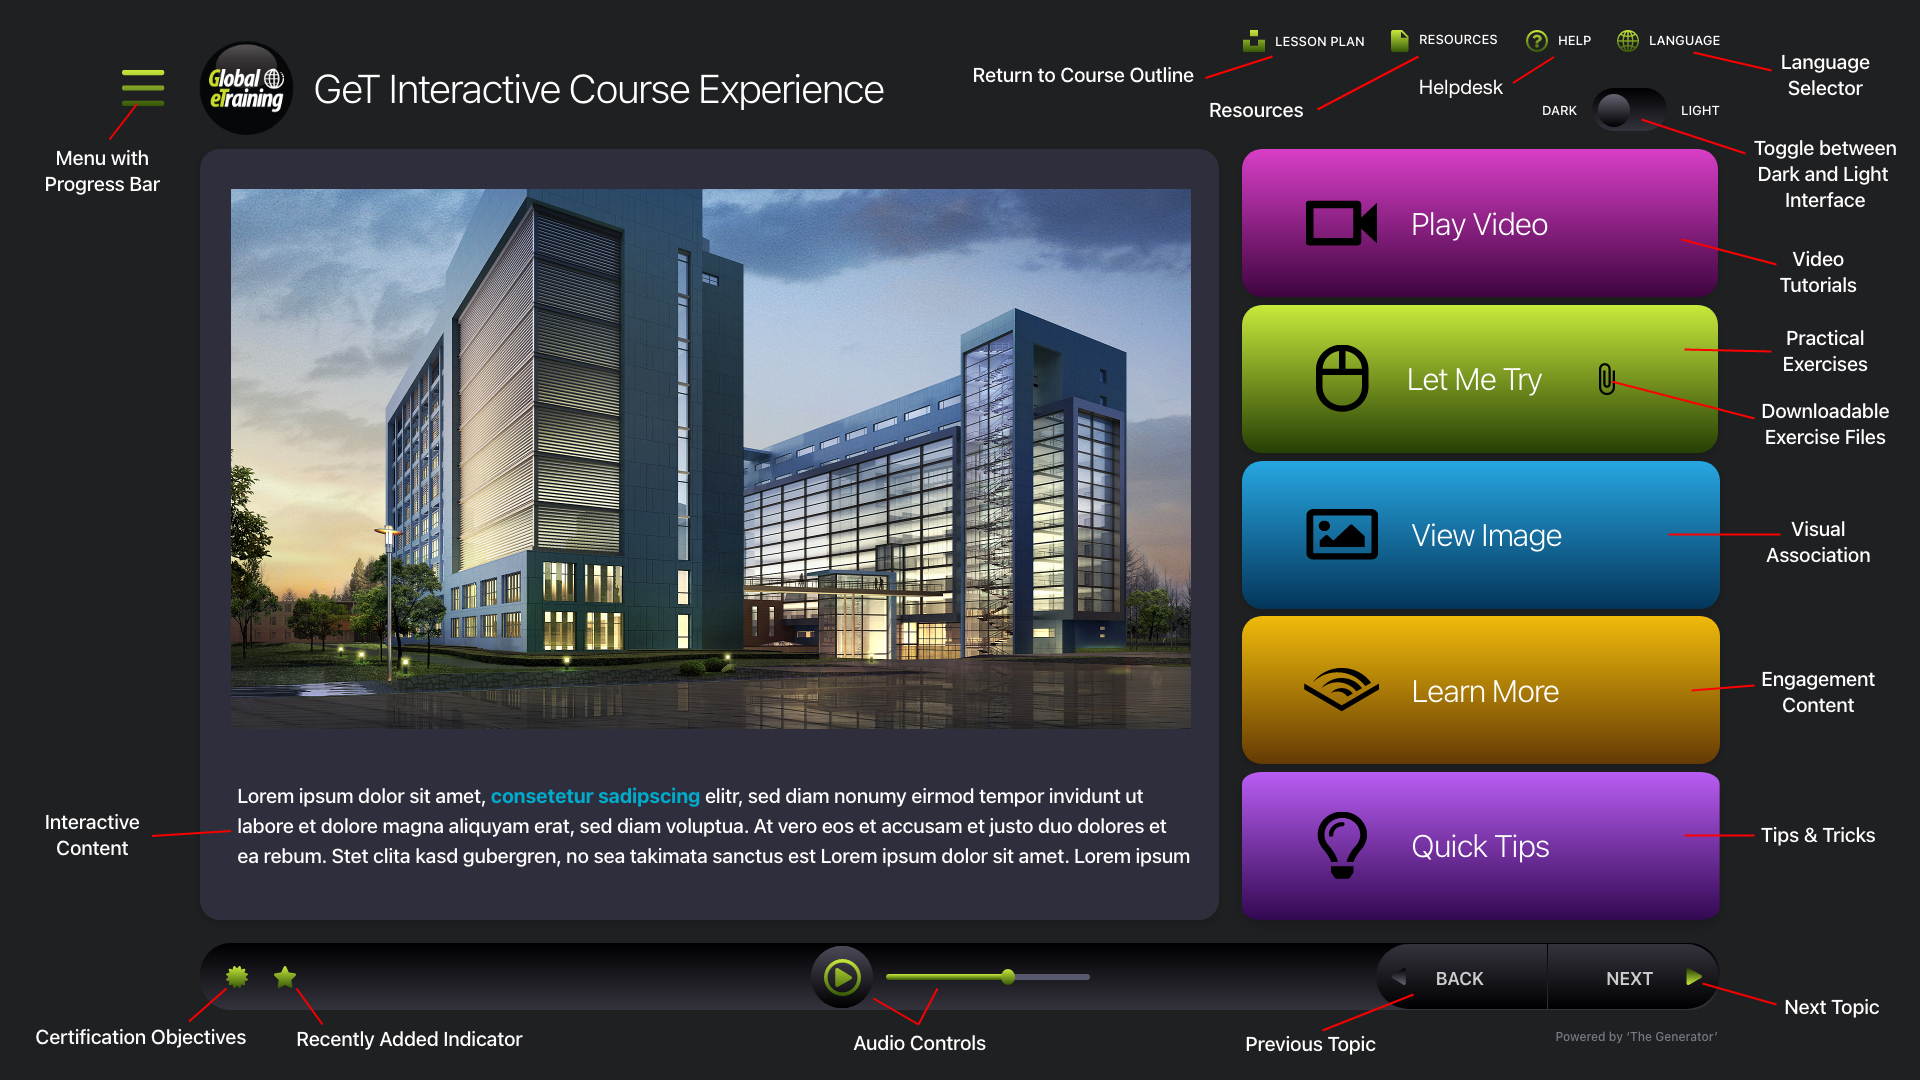 GeT Interactive Course Experience